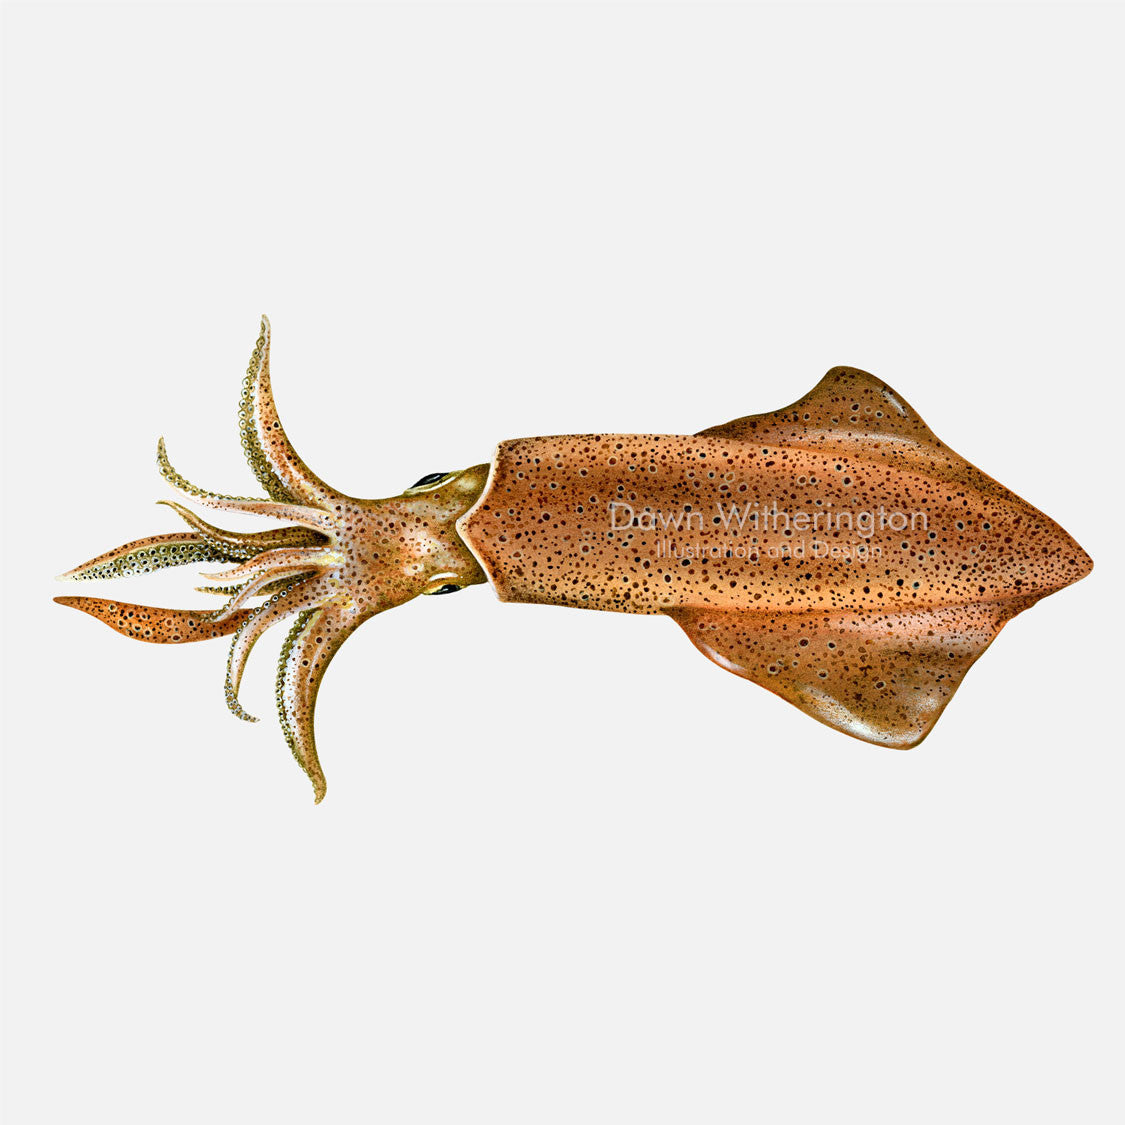 This beautiful drawing of a European squid, Loligo vulgaris, is accurate in detail.